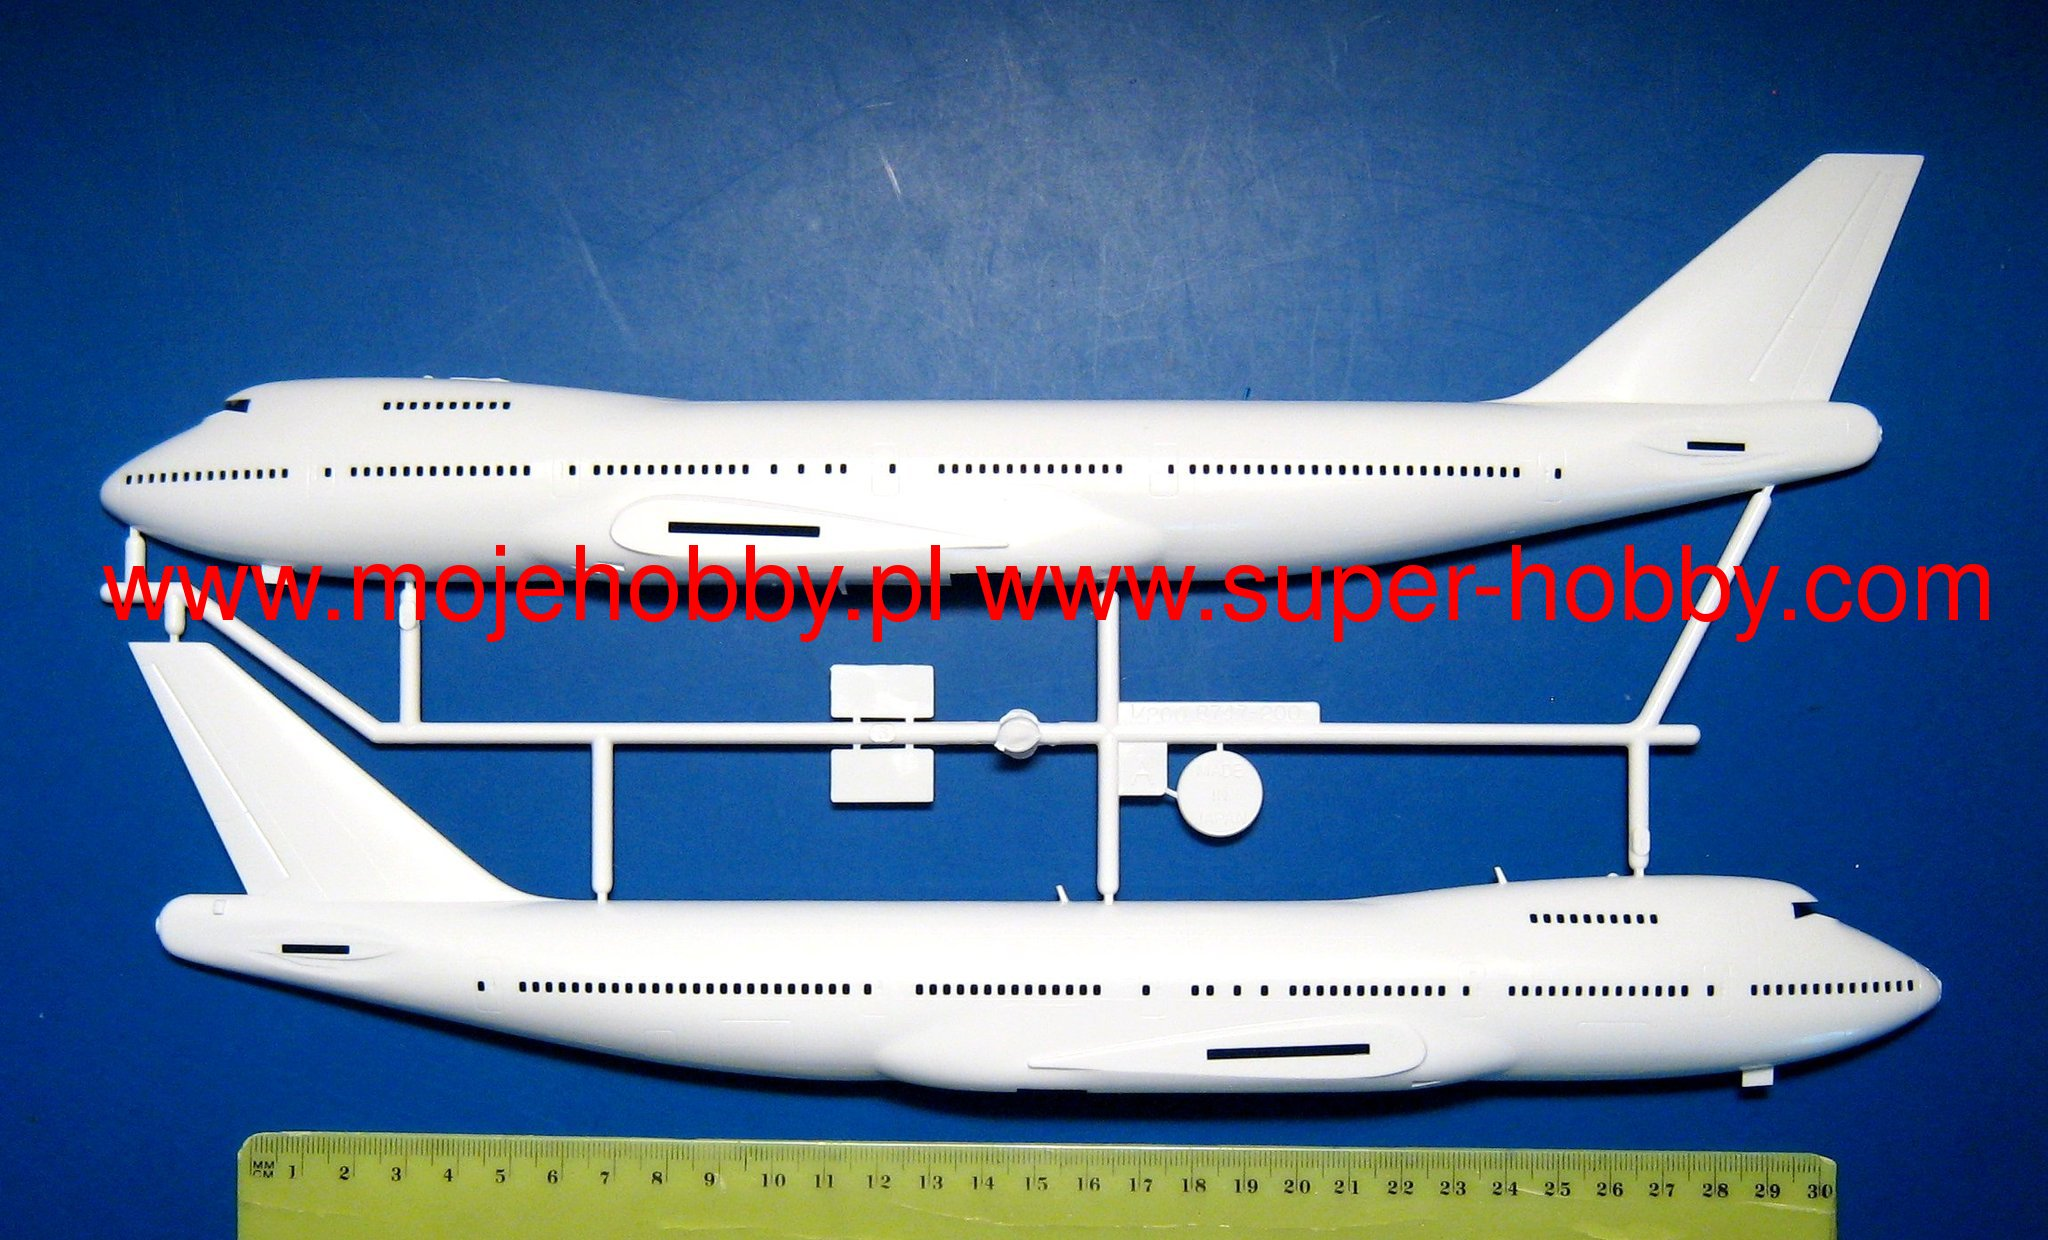 Images of 747 Space Shuttle Model - #SpaceMood